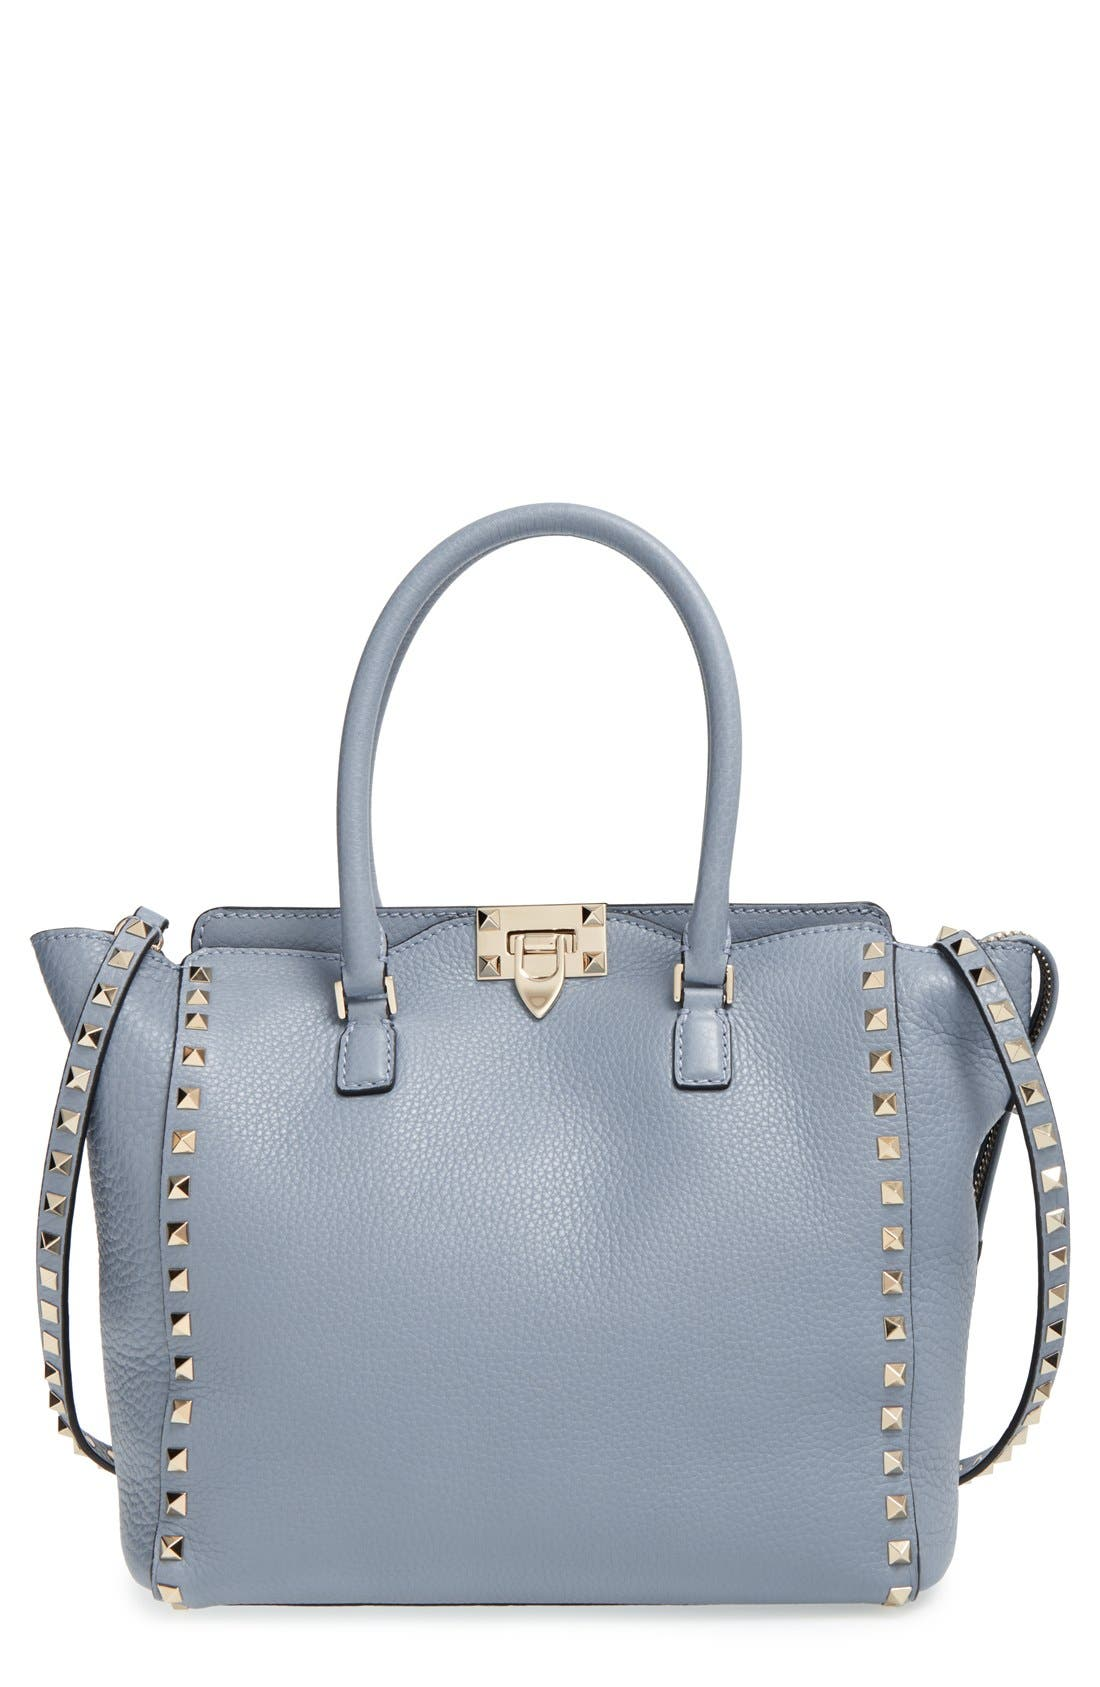 Main Image - Valentino 'Rockstud Double Handle' Leather Tote